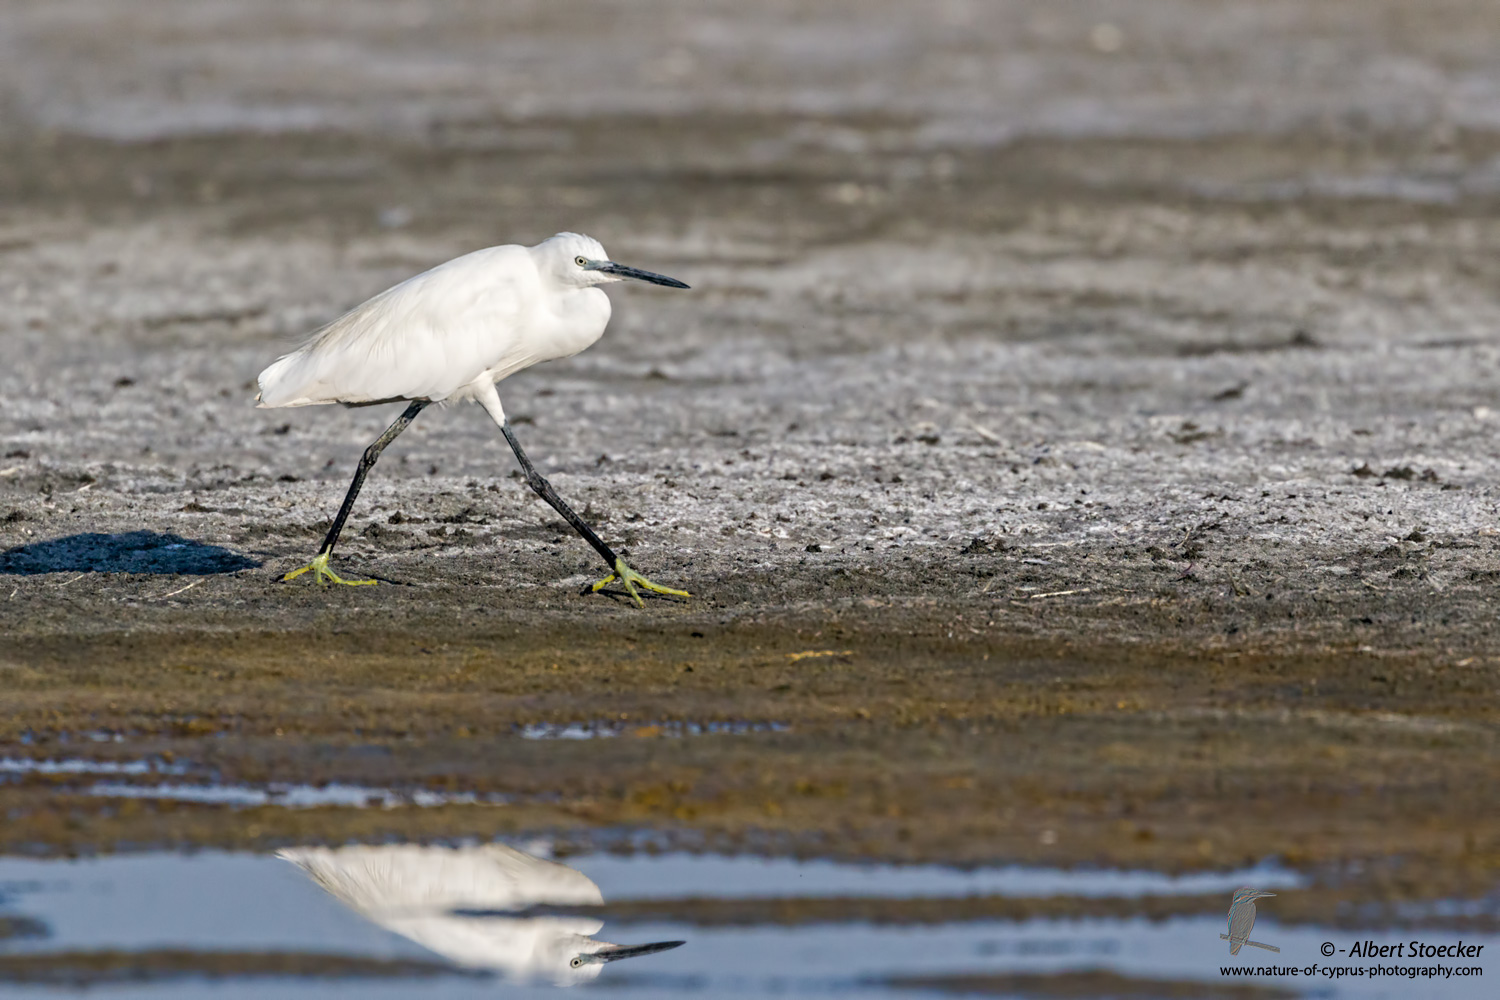 Seidenreiher, Little Egret, Egretta Garzetta, Cyprus, Akrotiri Salt Lake, September 2017